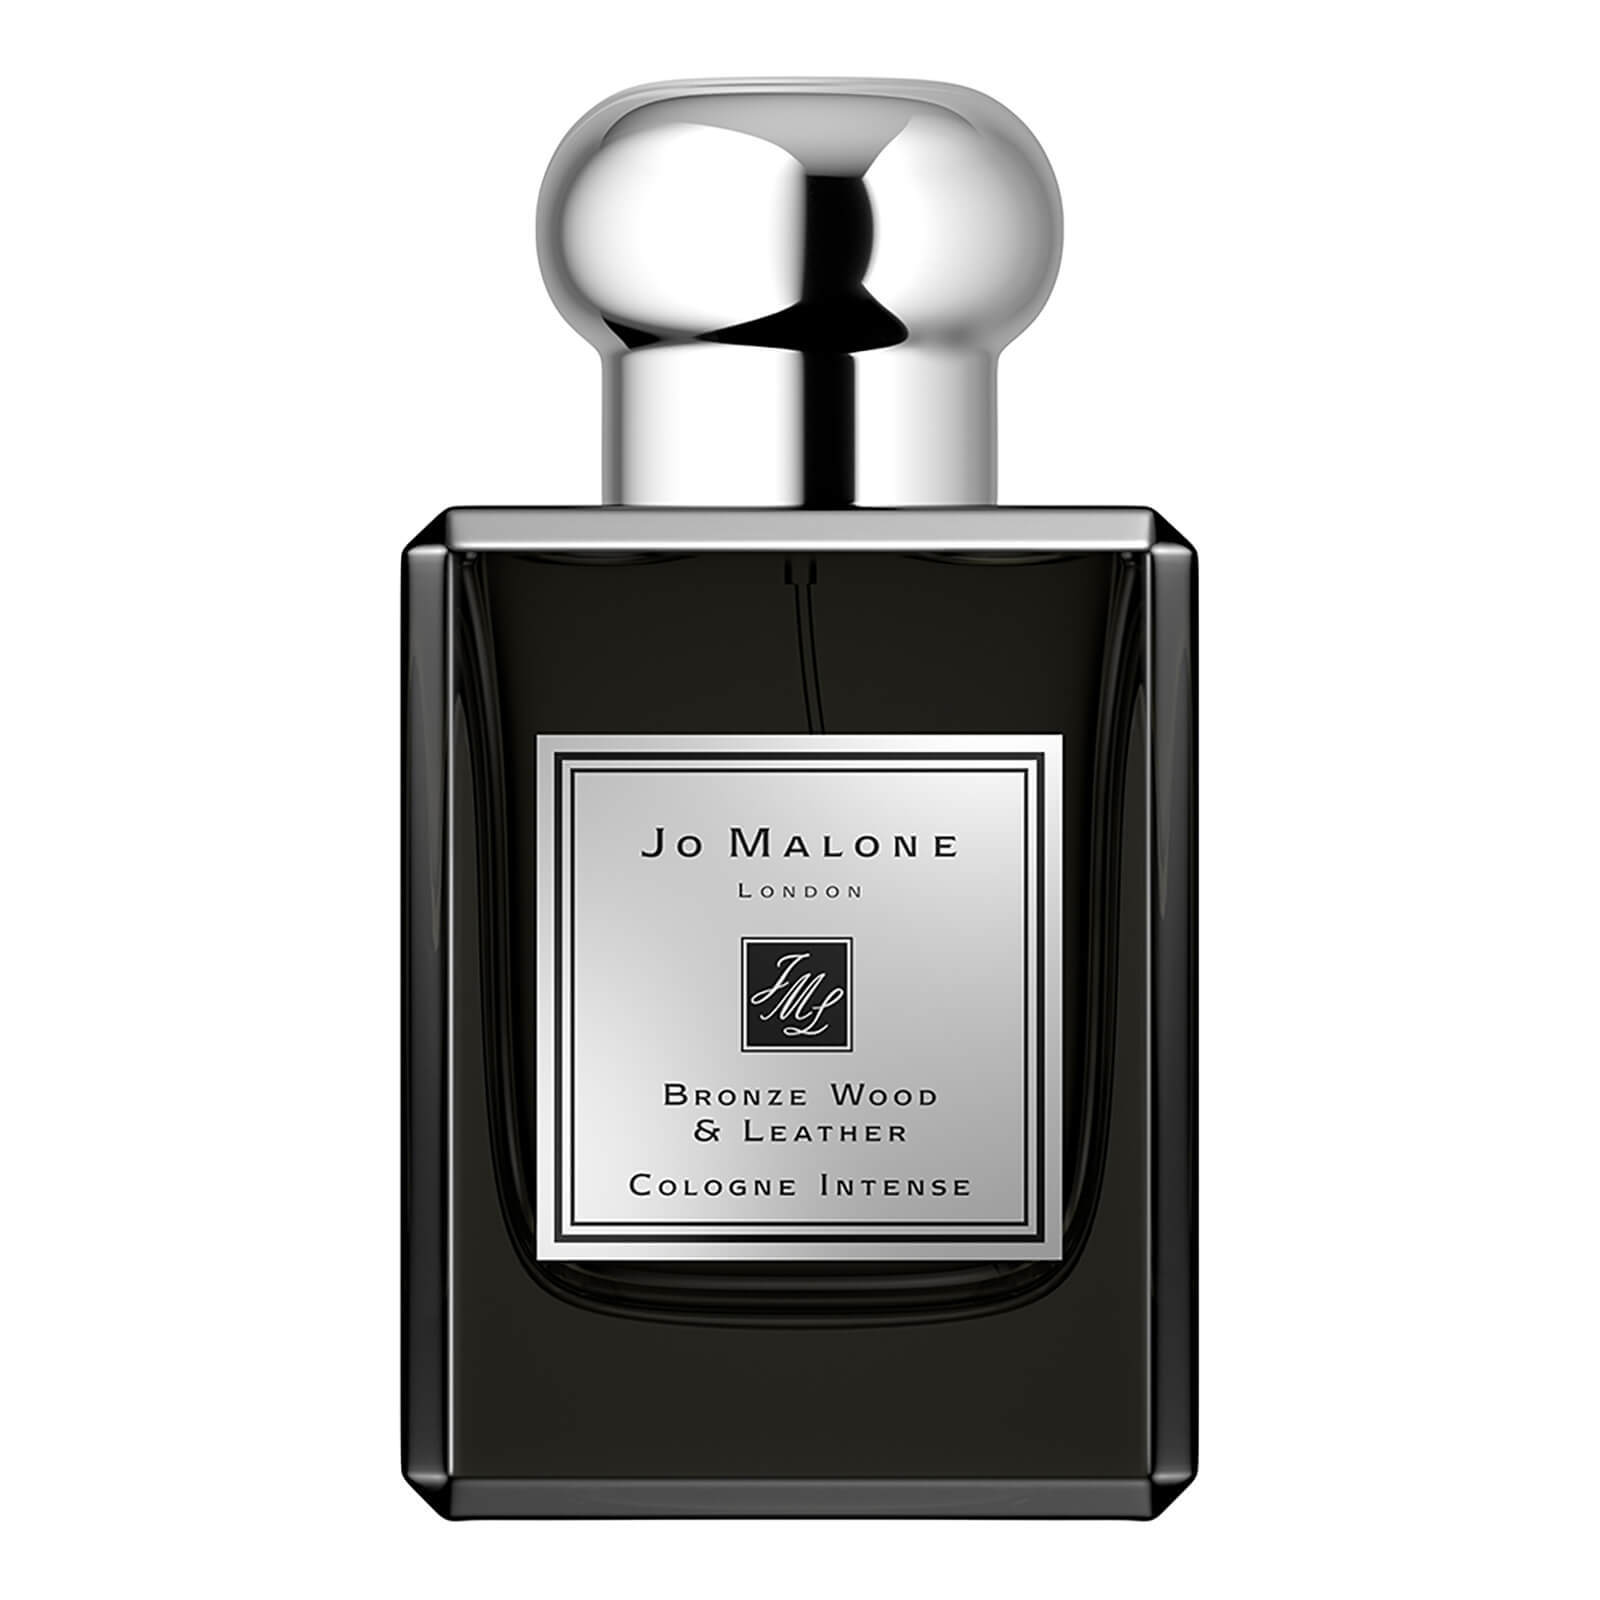 Jo Malone Bronze Wood & Leather Cologne Intense.jpg